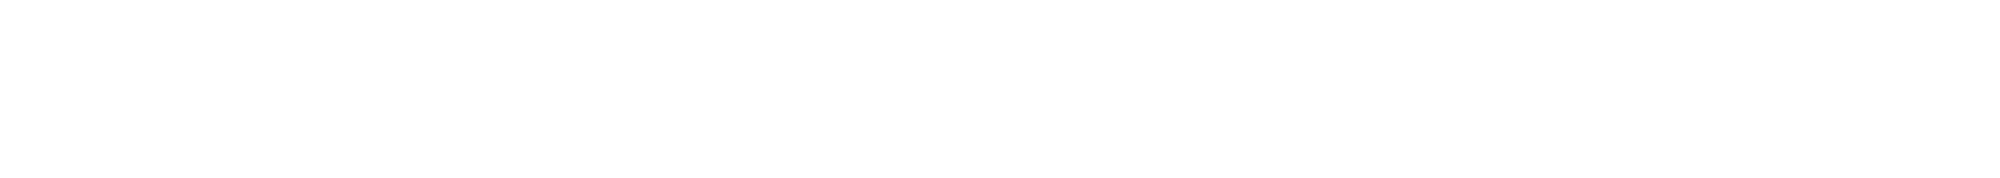 Scale of Values